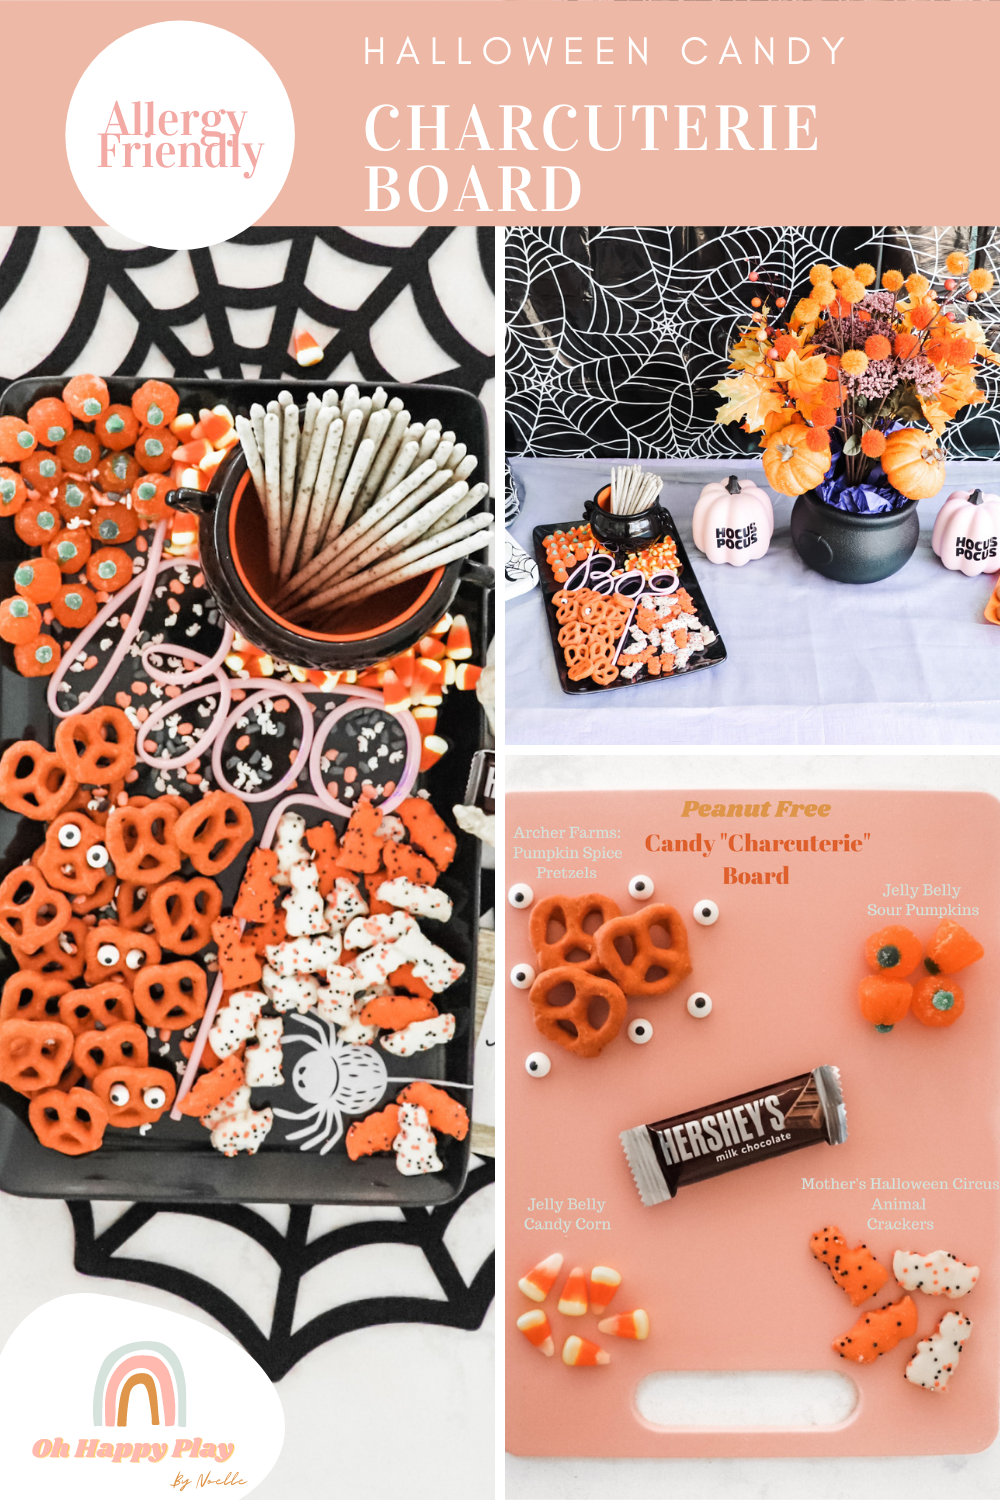 allergy friendly, Halloween grazing board, Halloween Party Grazing Food Table, candy charcuterie board, halloween candy charcuterie platter, charcuterie board, board birthday, board halloween, board, instagram reels mom blogger, easy halloween treats dessert